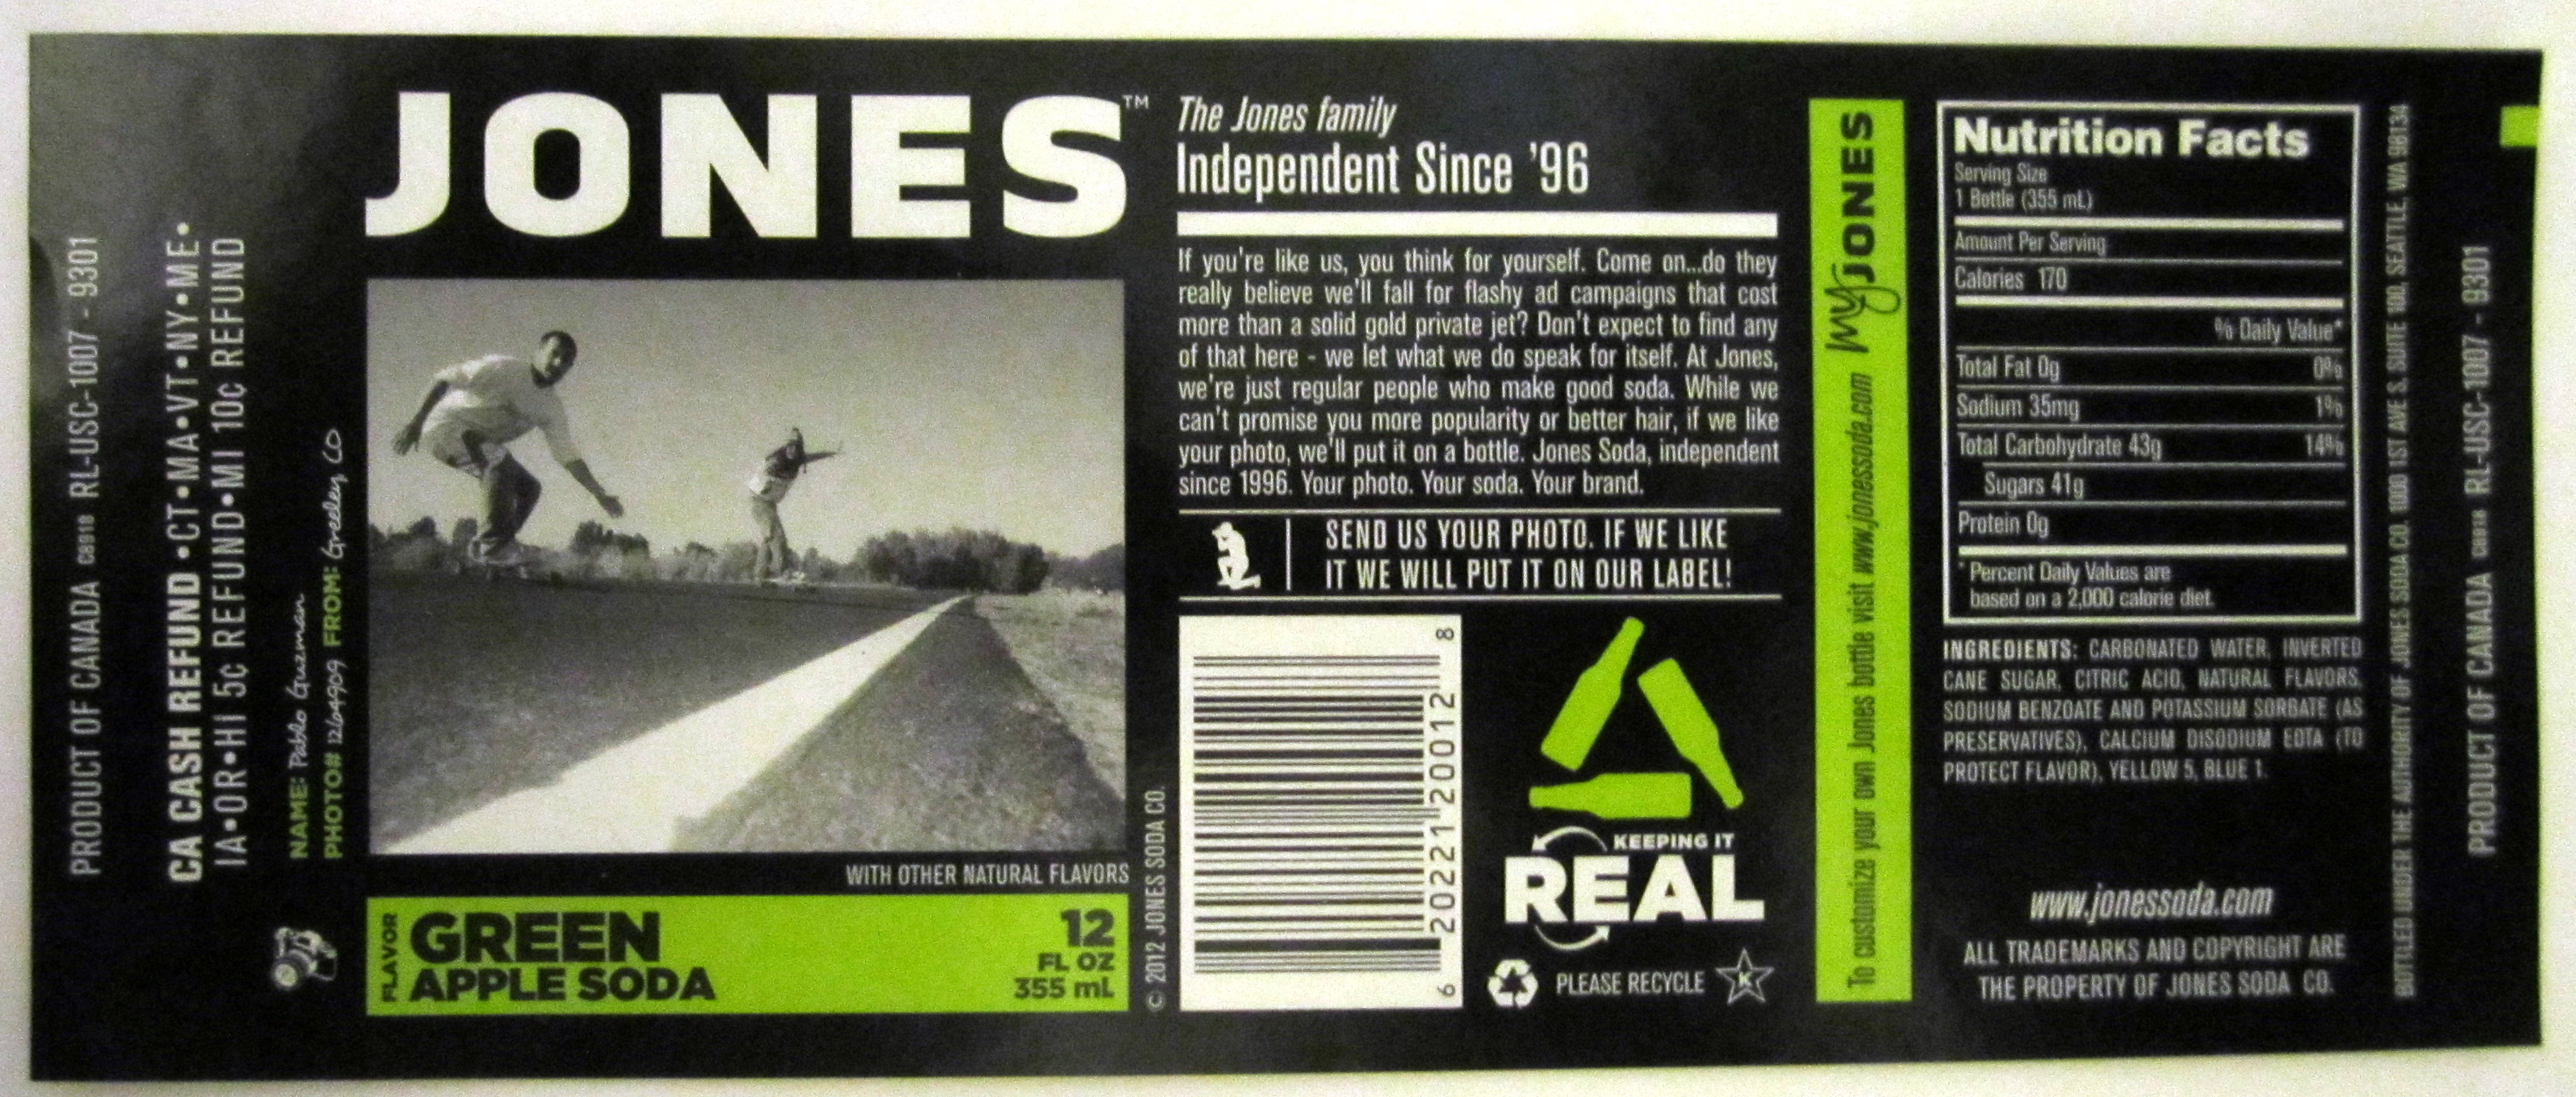 Tyler's Blog: jones soda label